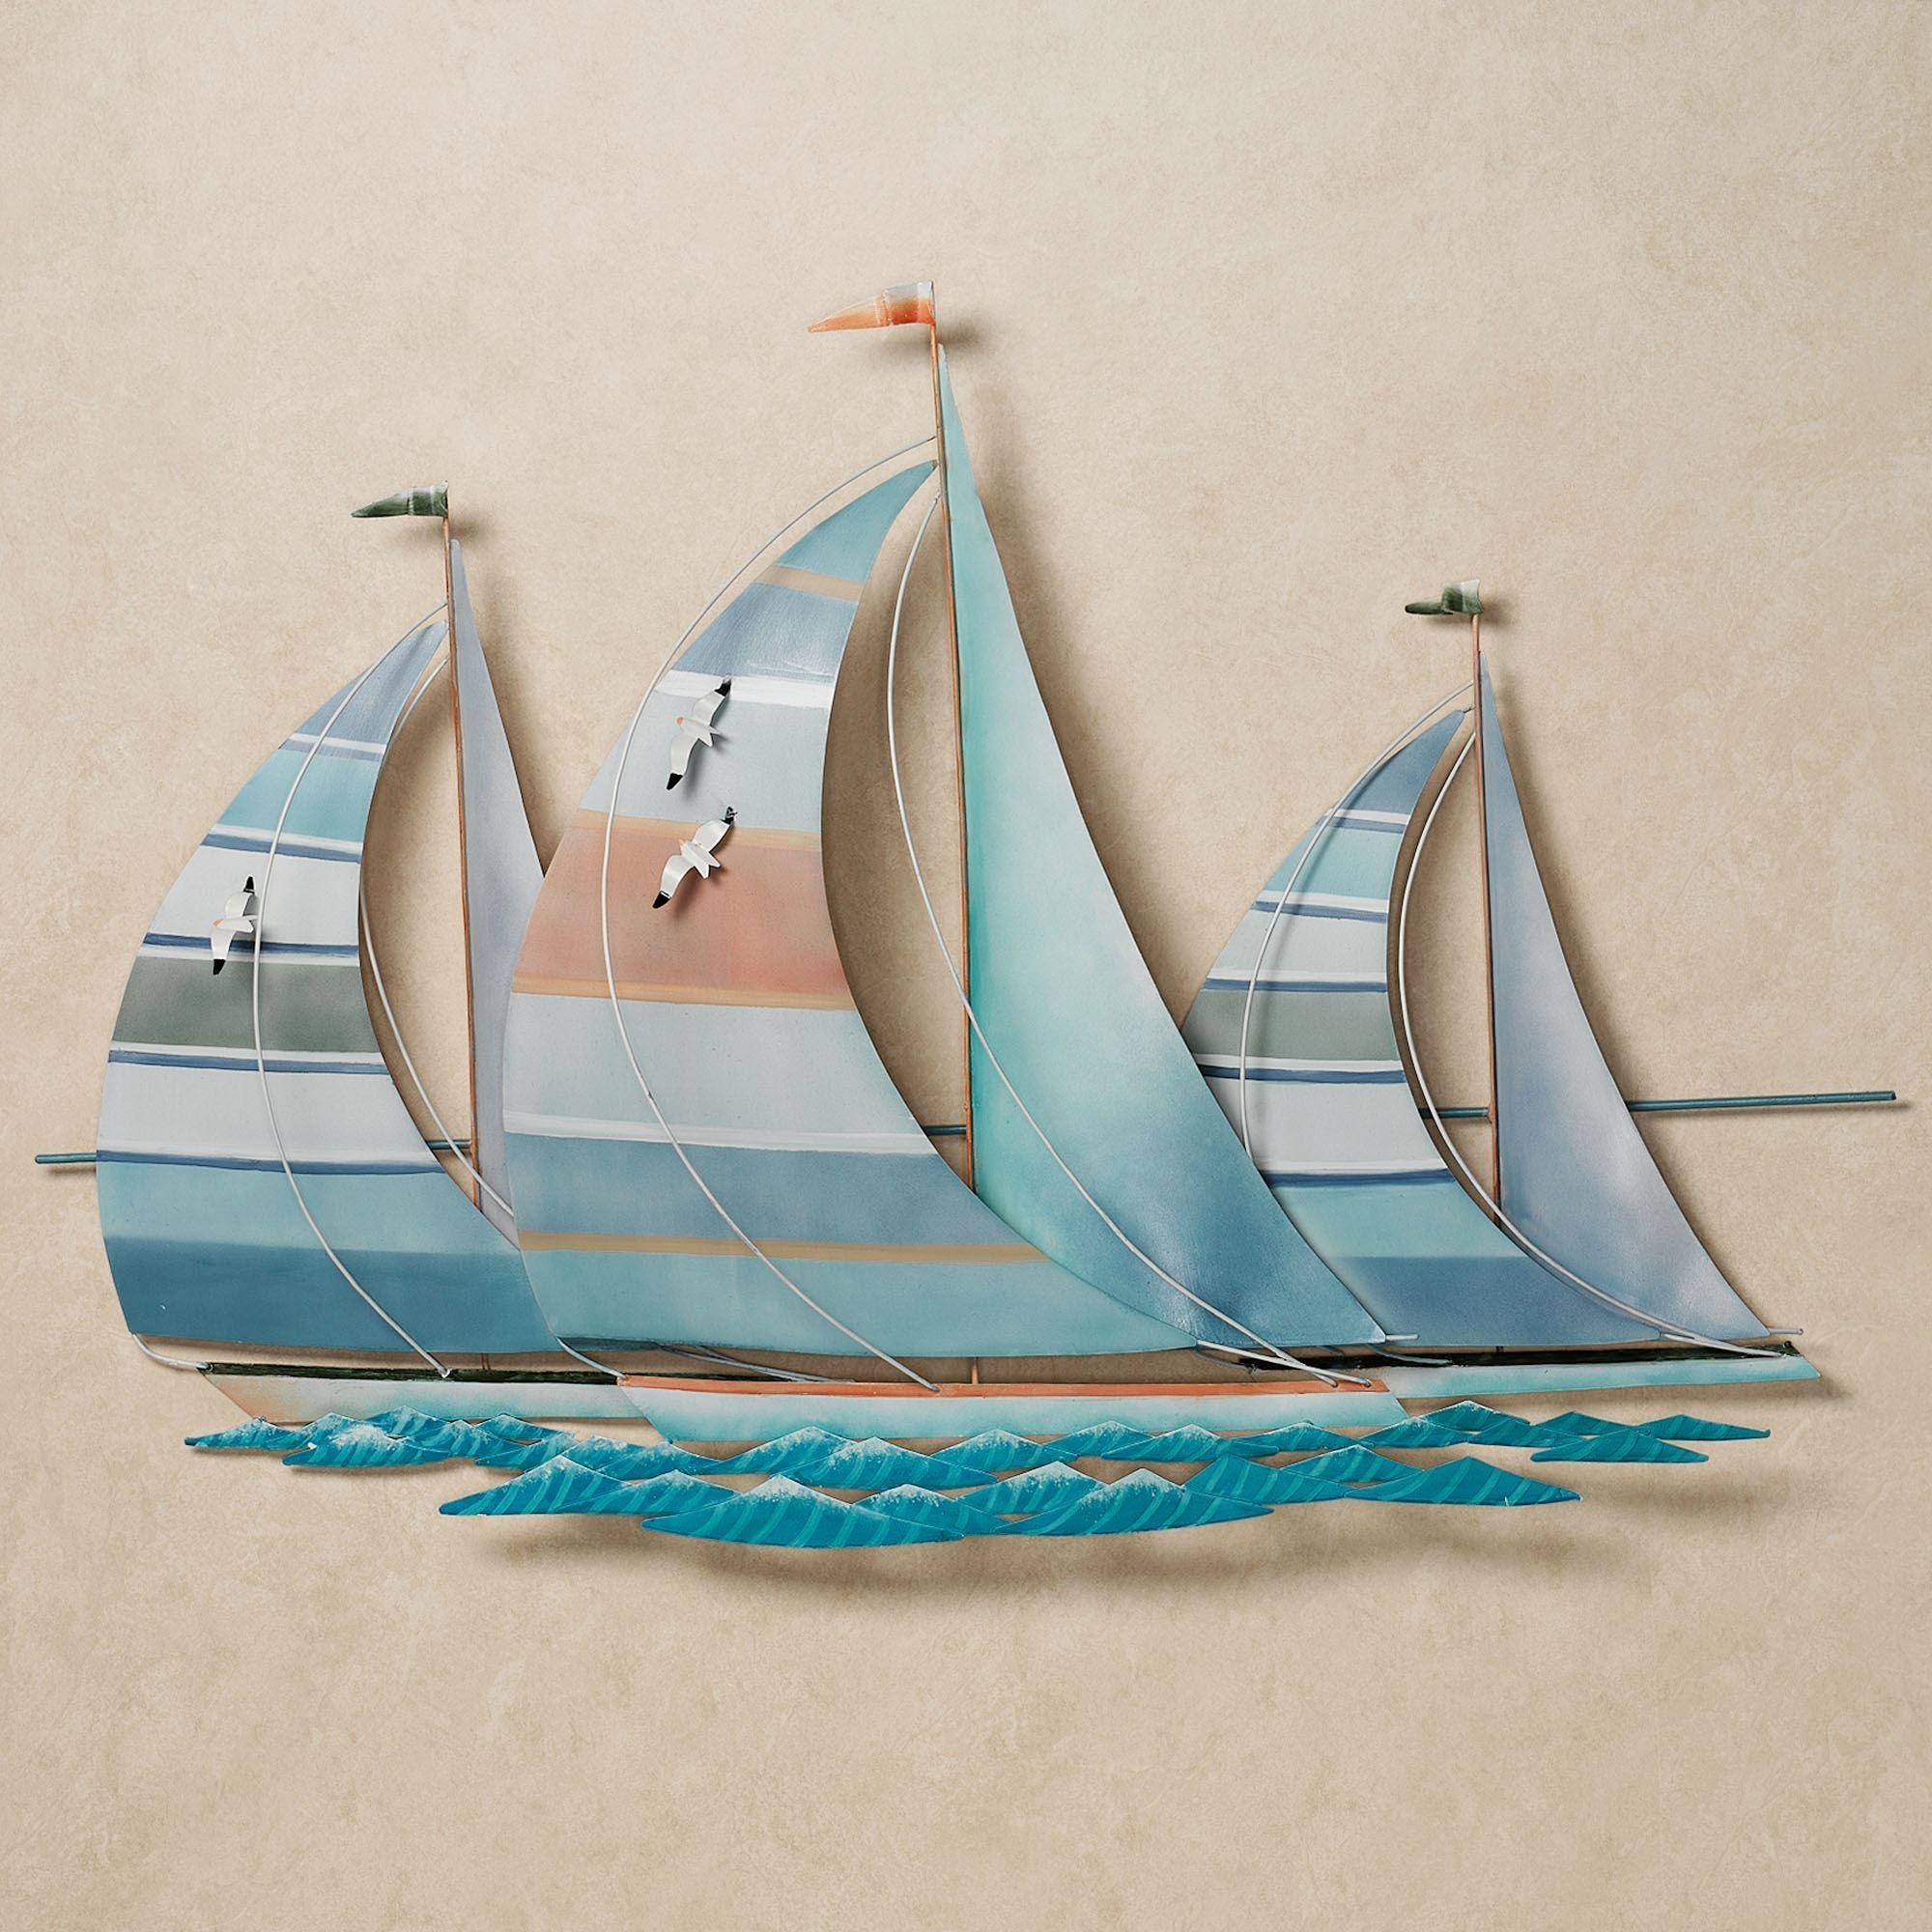 Regatta Finish Line Multi Cool Metal Sailboat Wall Sculpture Throughout Sailboat Metal Wall Art (View 9 of 20)